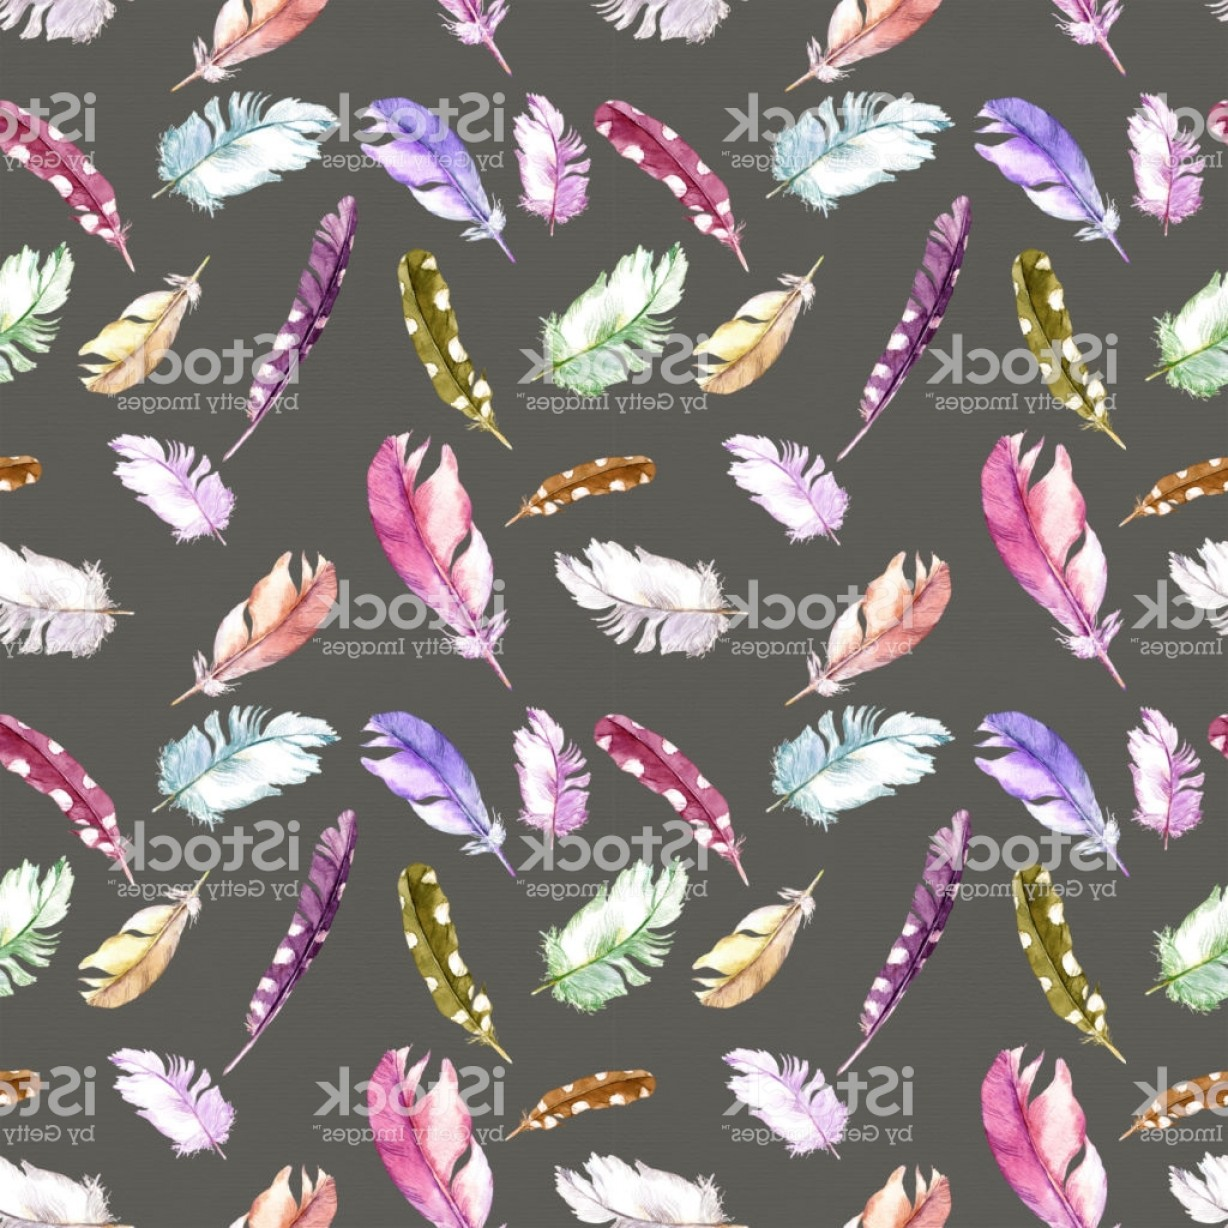 Purple Butterfly Wallpaper Vector: Feathers Pattern For Wallpaper Design Watercolor Seamless Background Gm